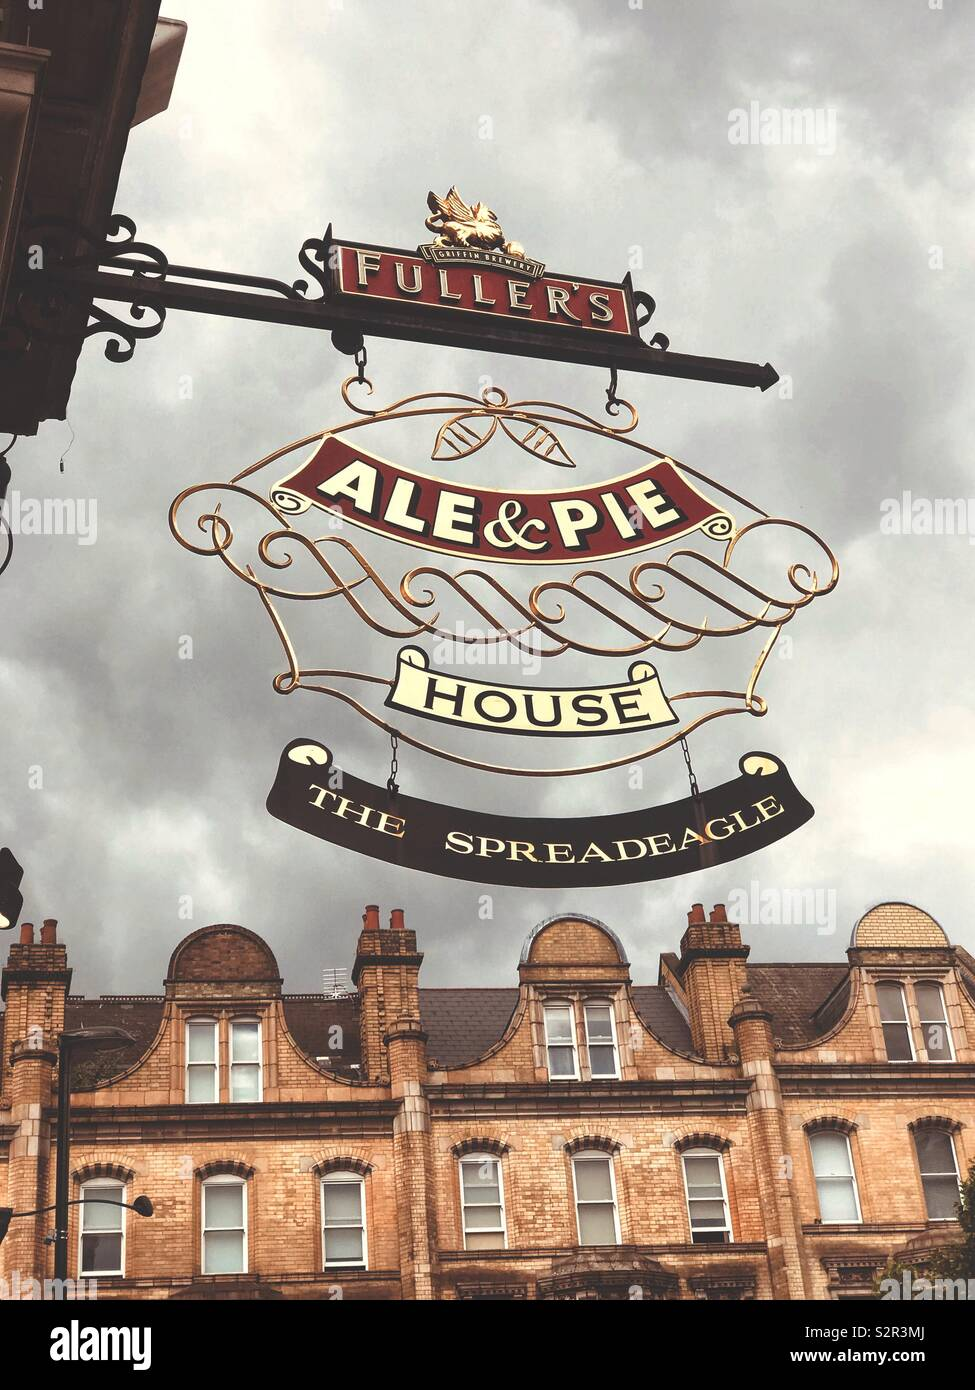 A traditional pub sign in London, England, silhouetted against a cloudy sky. - Stock Image